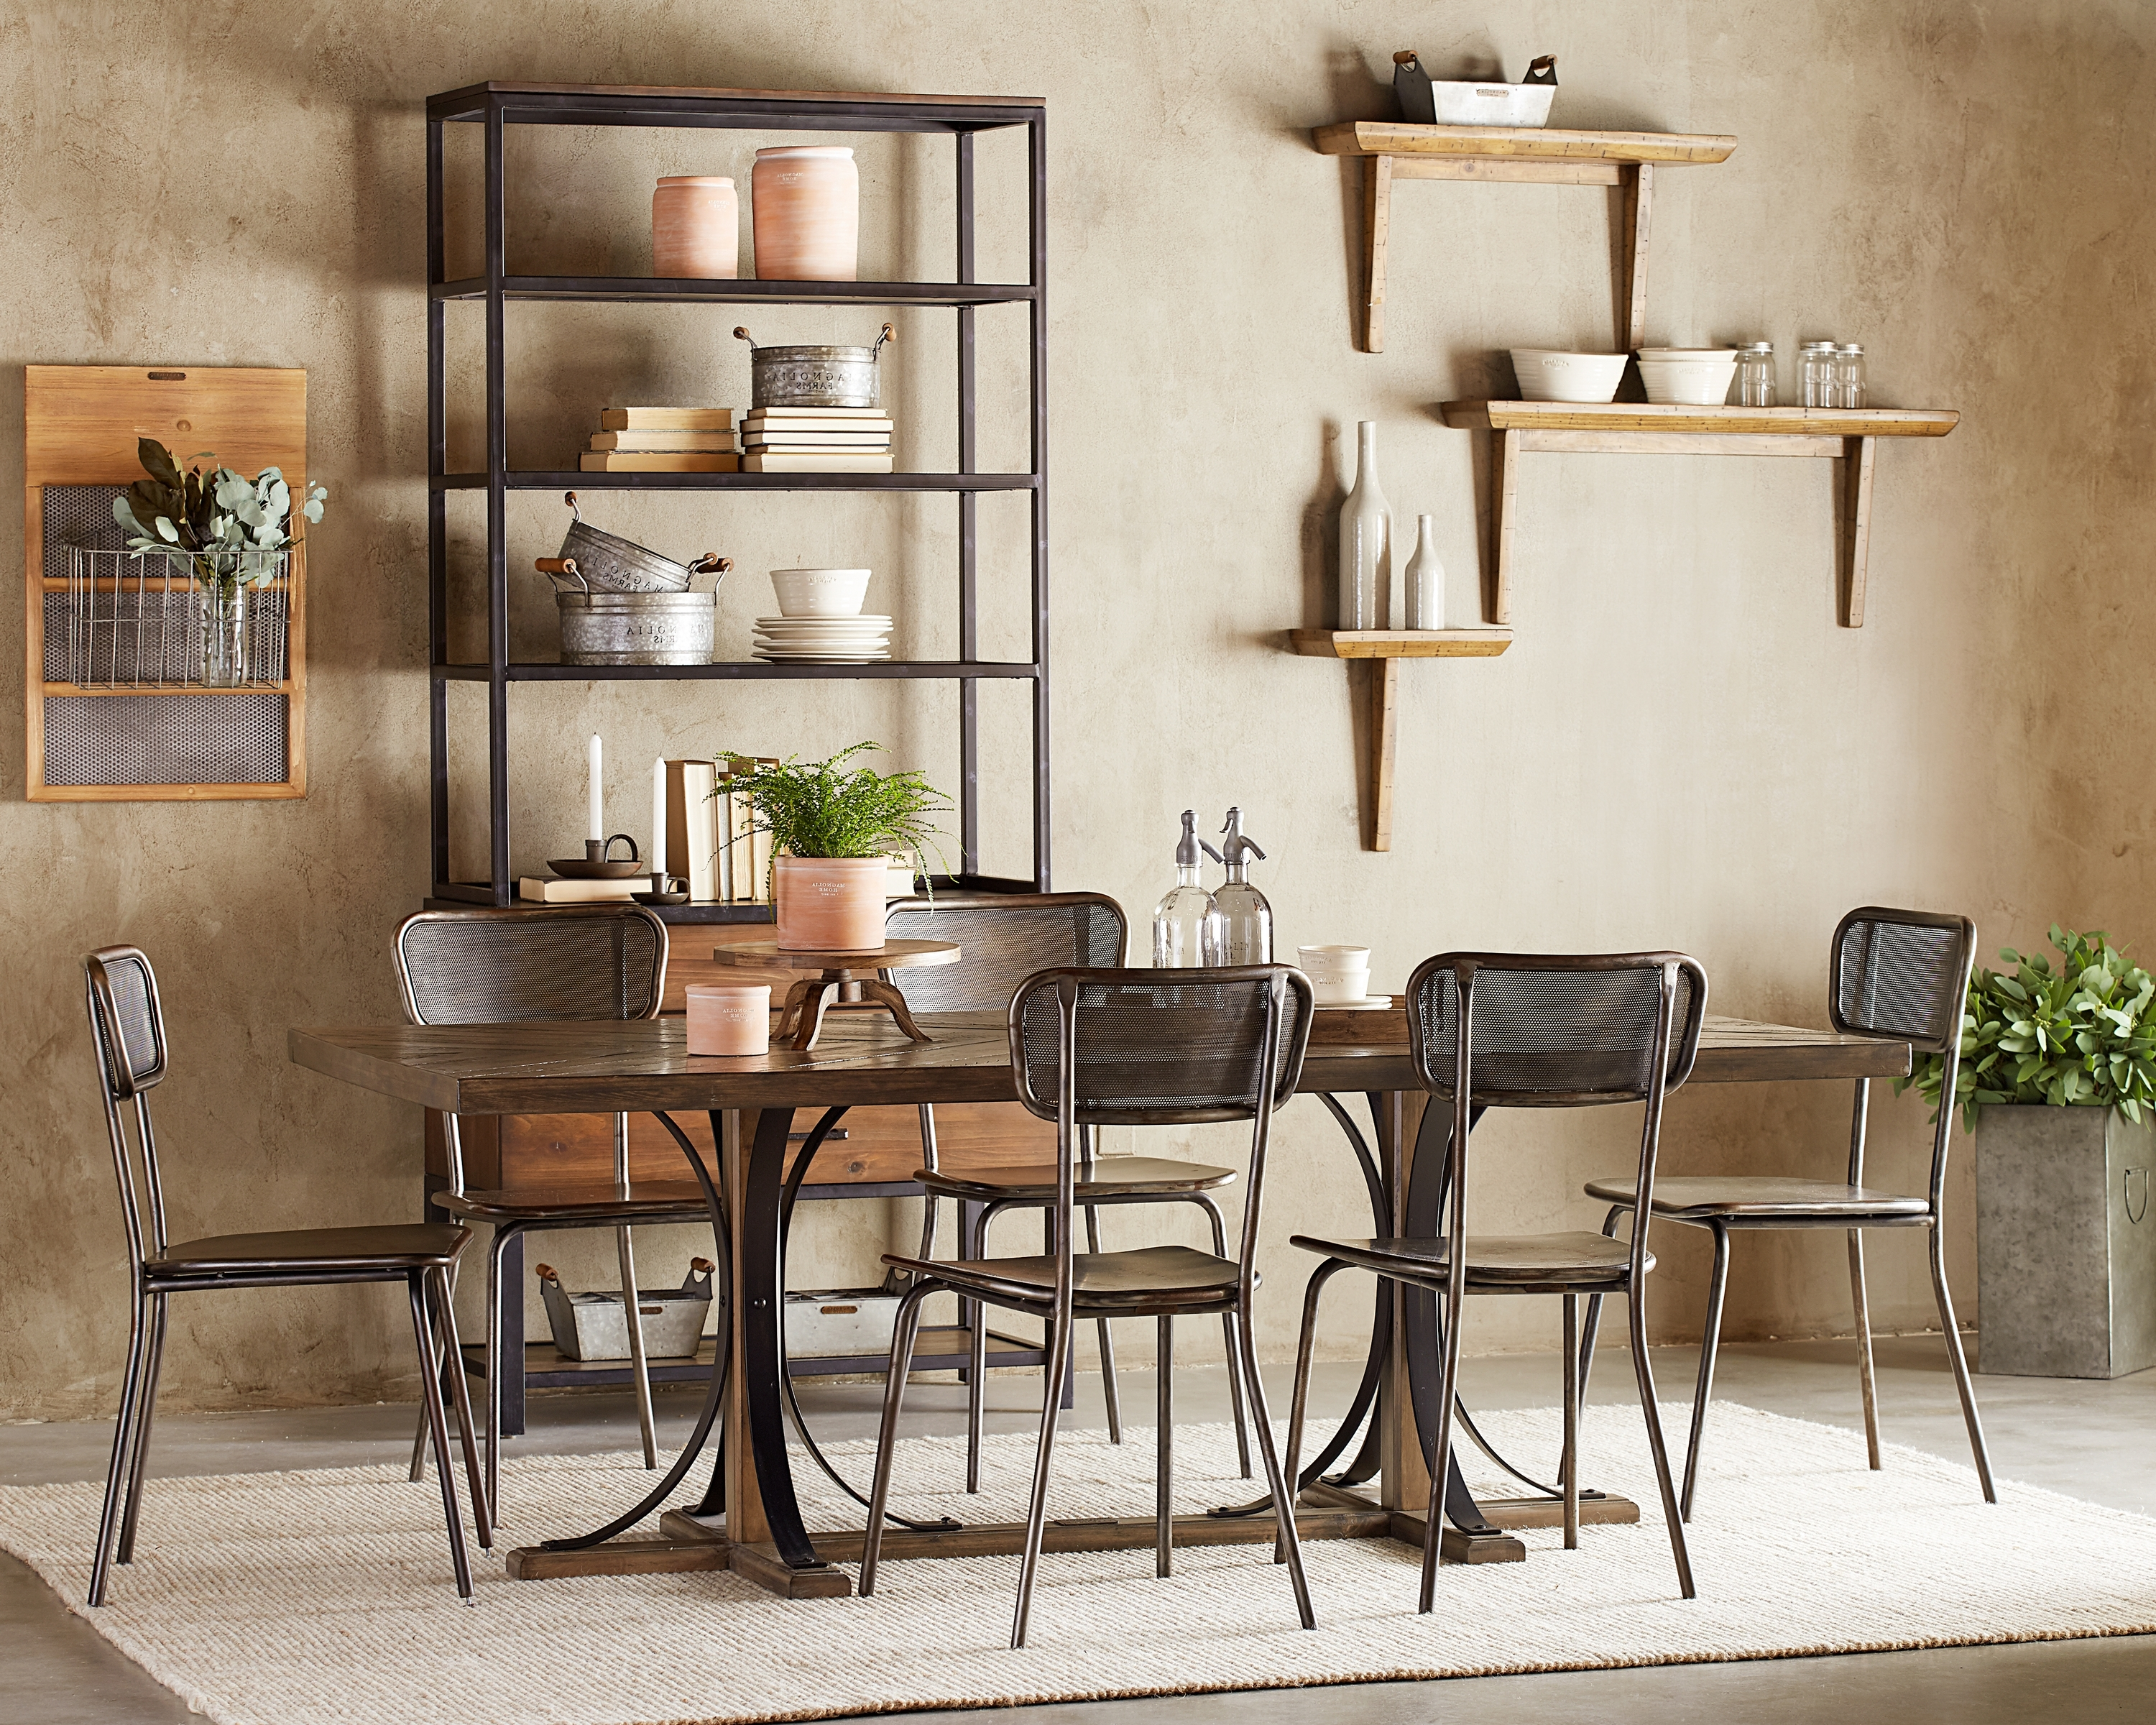 Magnolia Home Sawbuck Dining Tables Throughout Current Iron Trestle Dining Table – Magnolia Home (View 8 of 25)